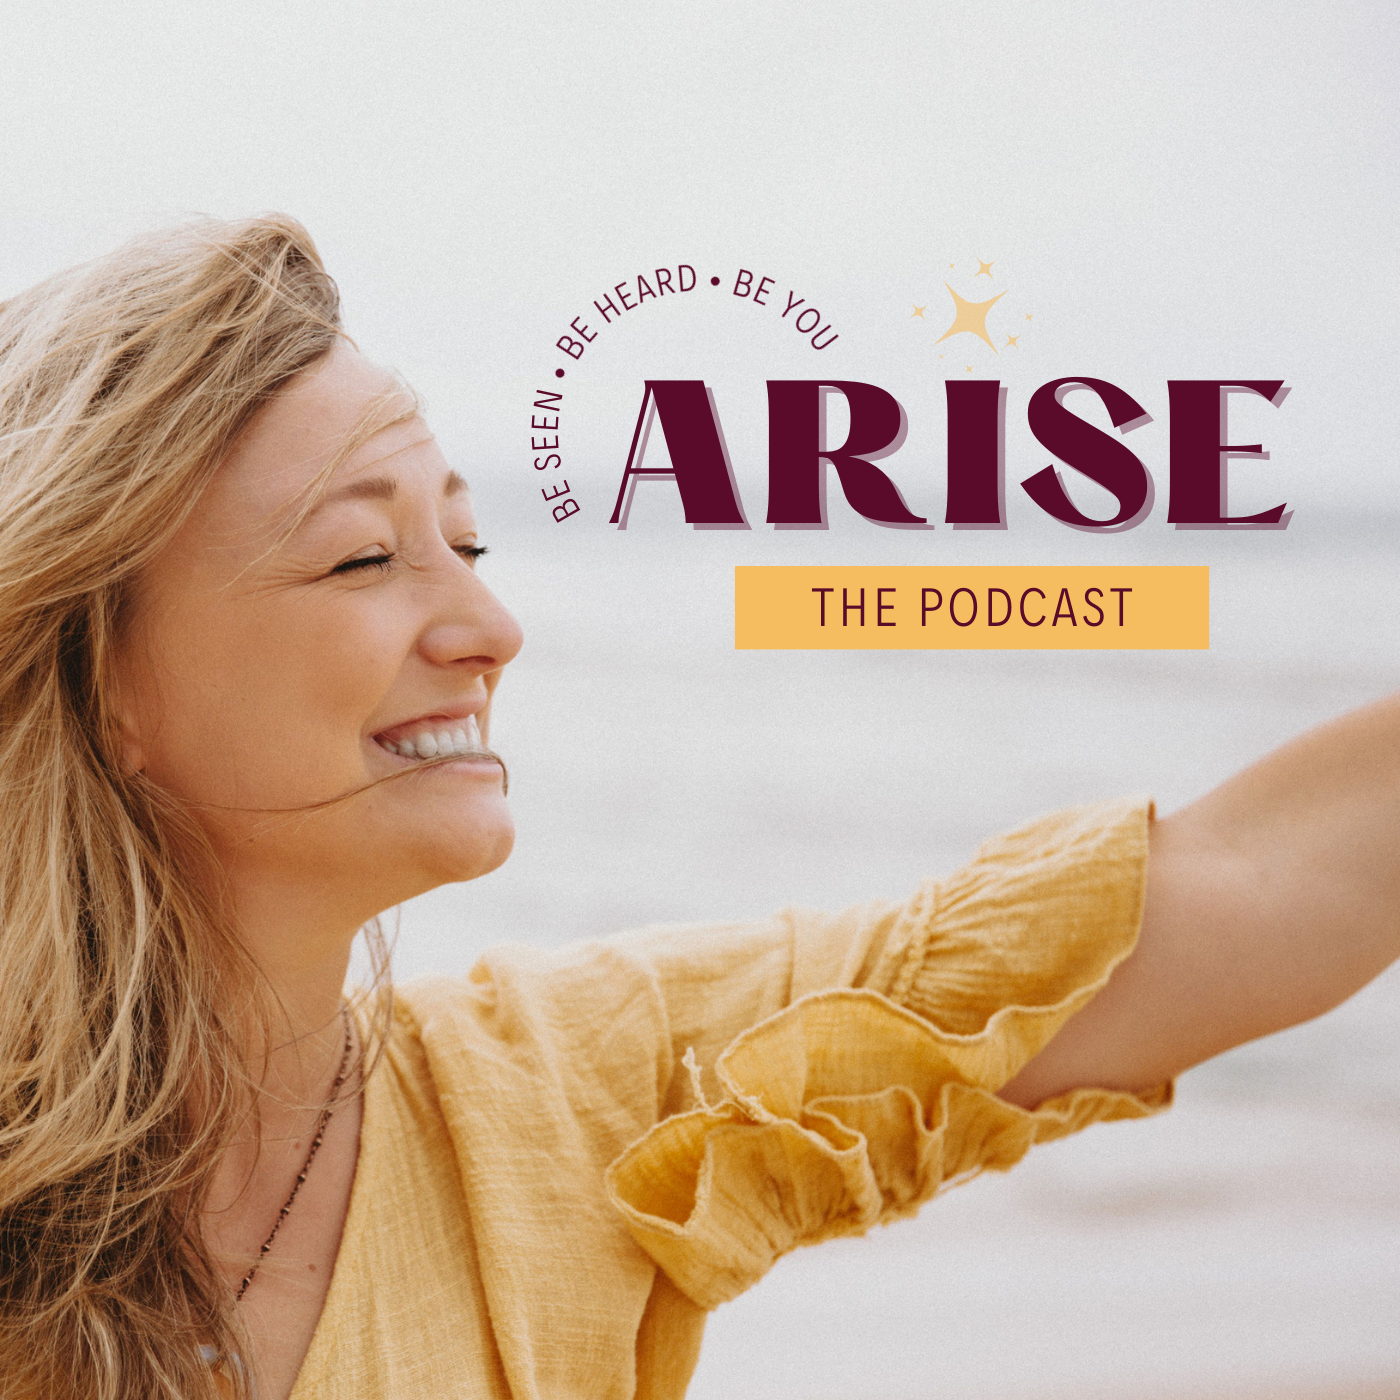 ARISE The Podcast show art